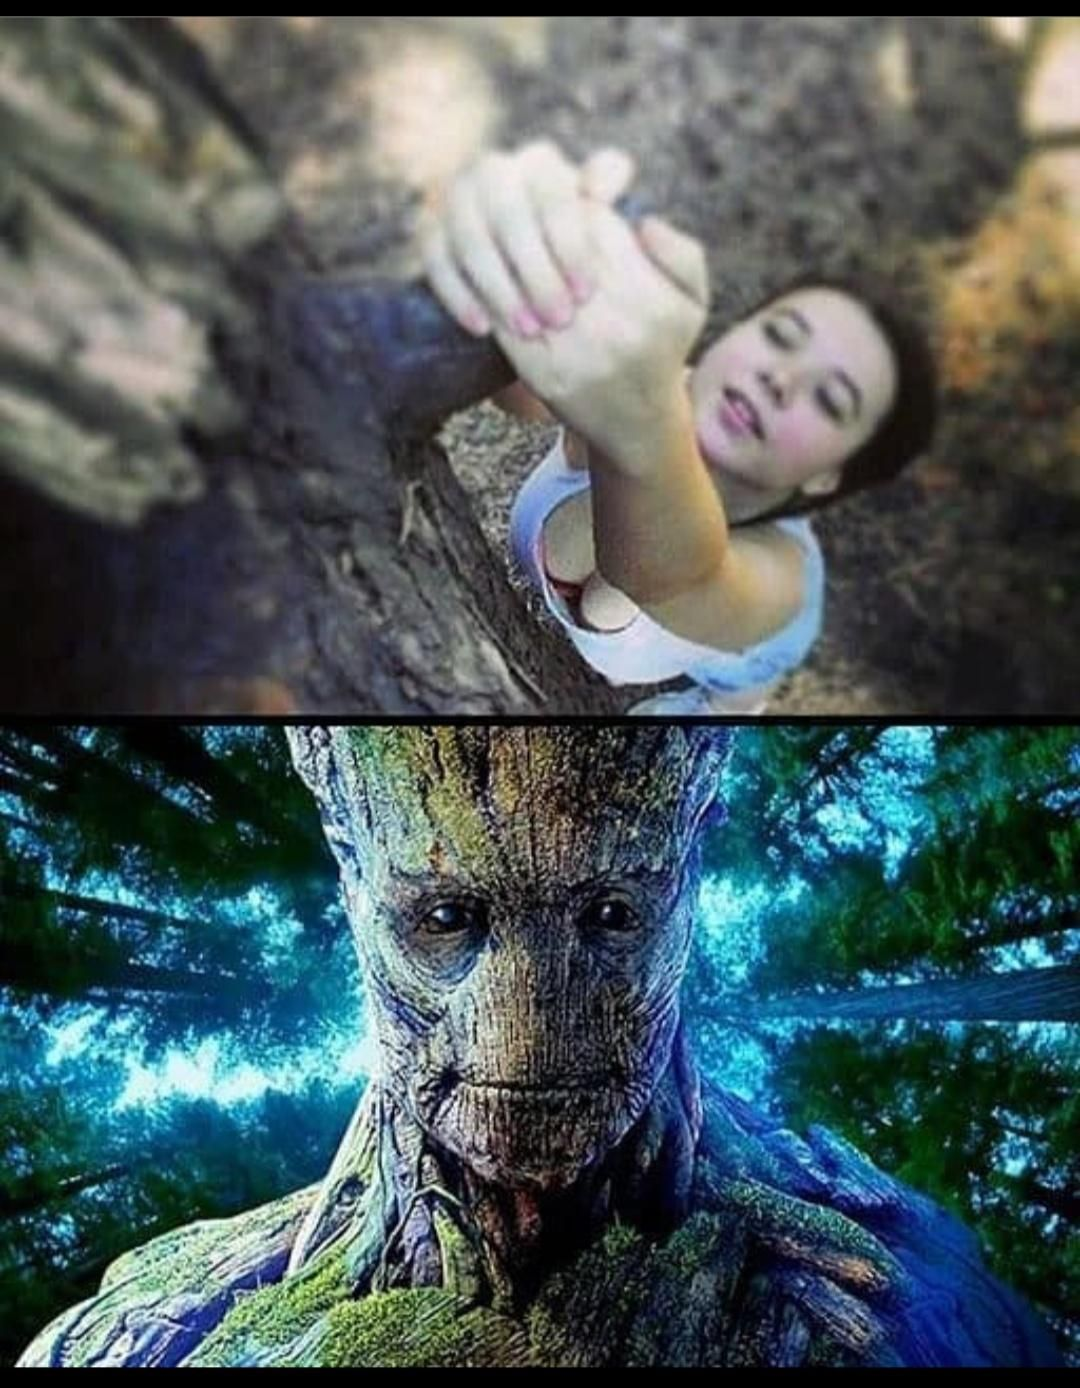 Groot thingss